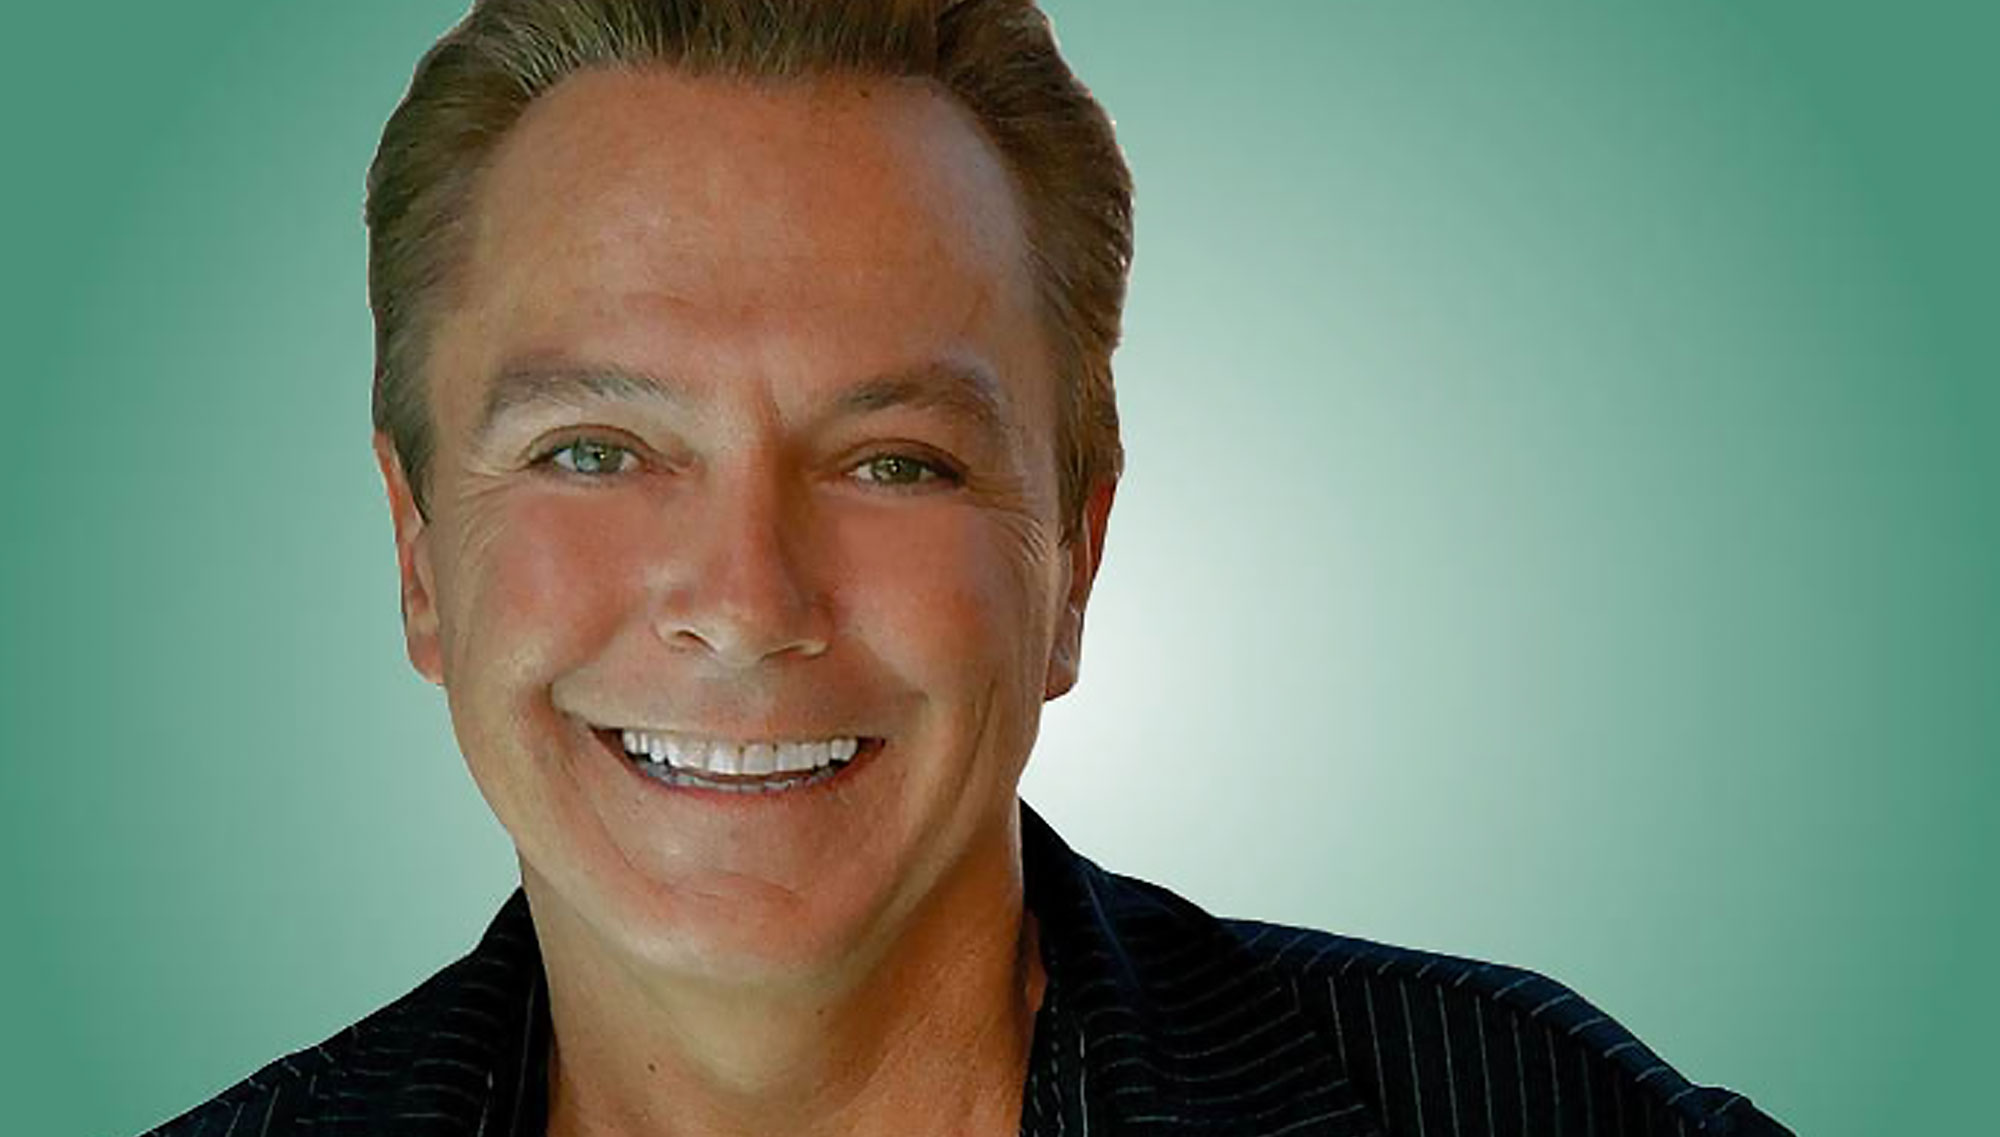 DAVID CASSIDY<h5>March 3</h5>